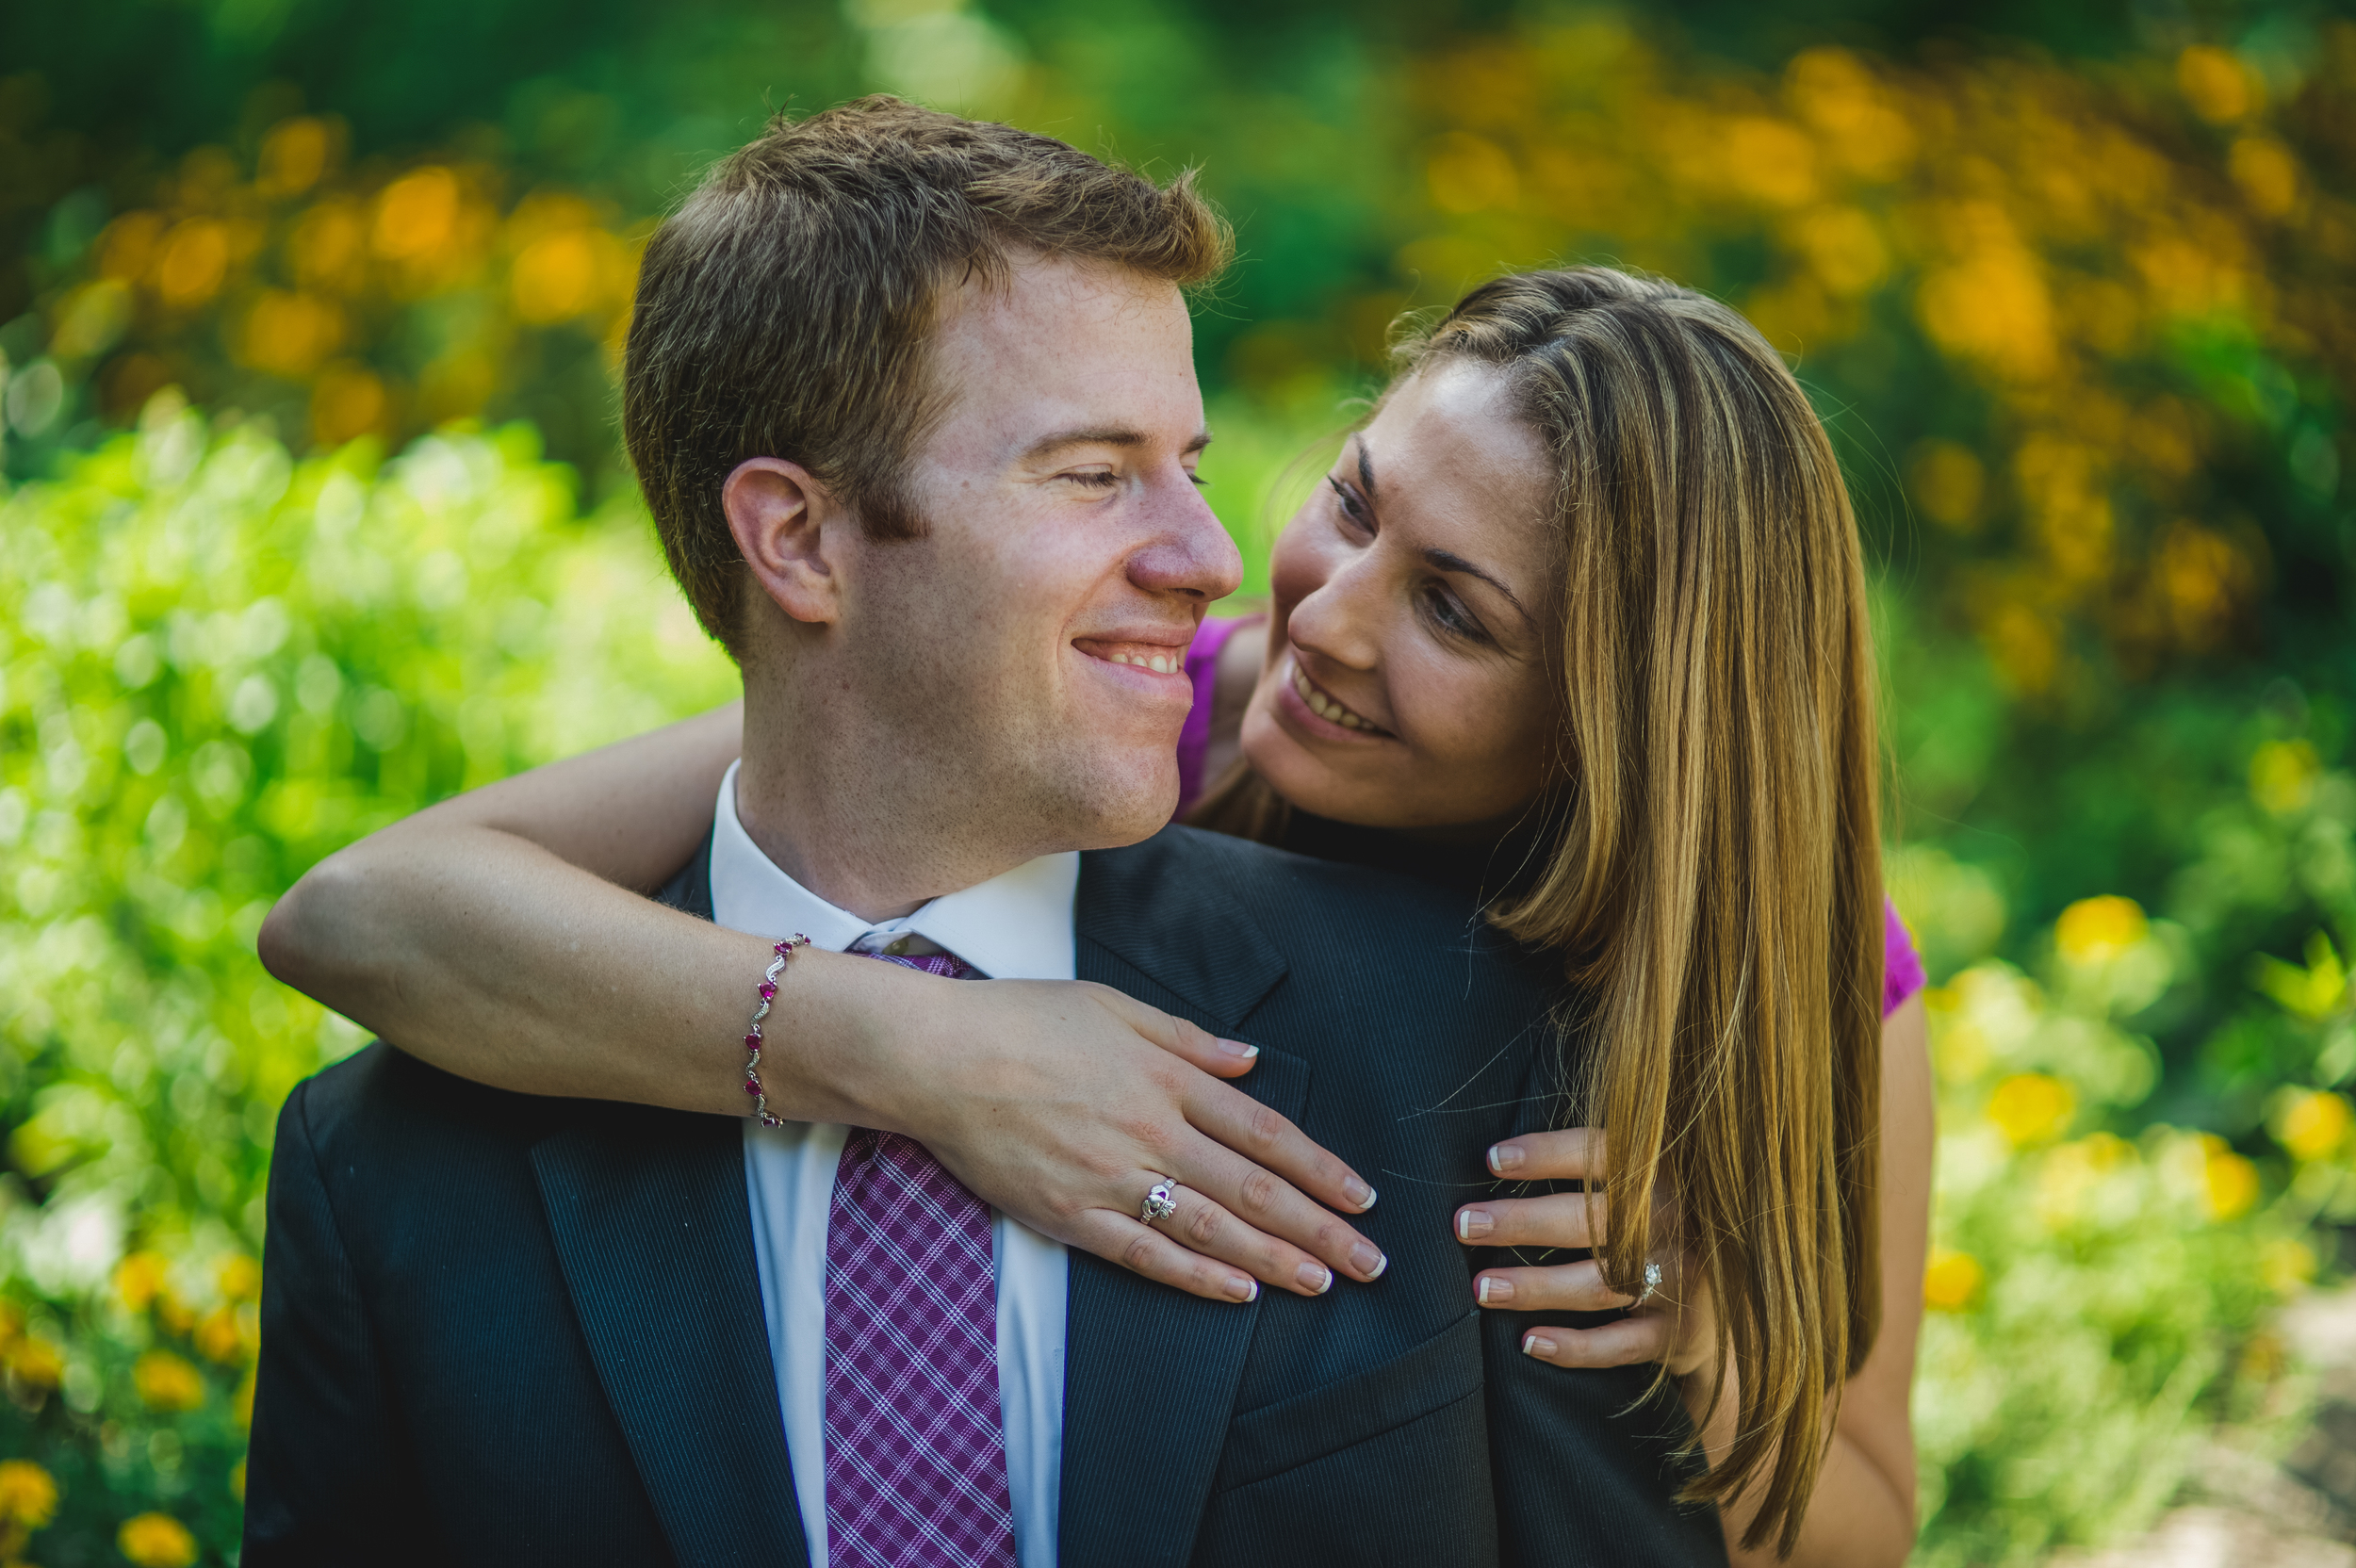 Engagement session Annapolis MD By Mantas Kubilinskas-10.jpg